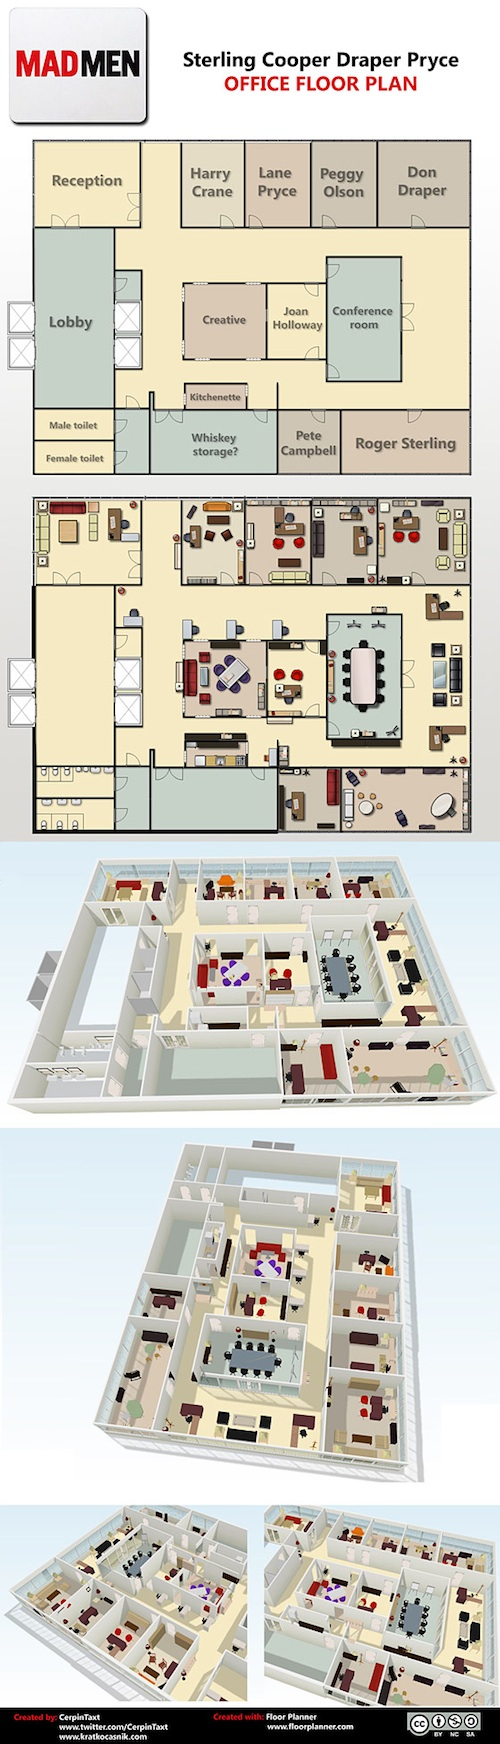 Buzz Break The Floor Plan for Sterling Cooper Draper Pryce Has Arrived